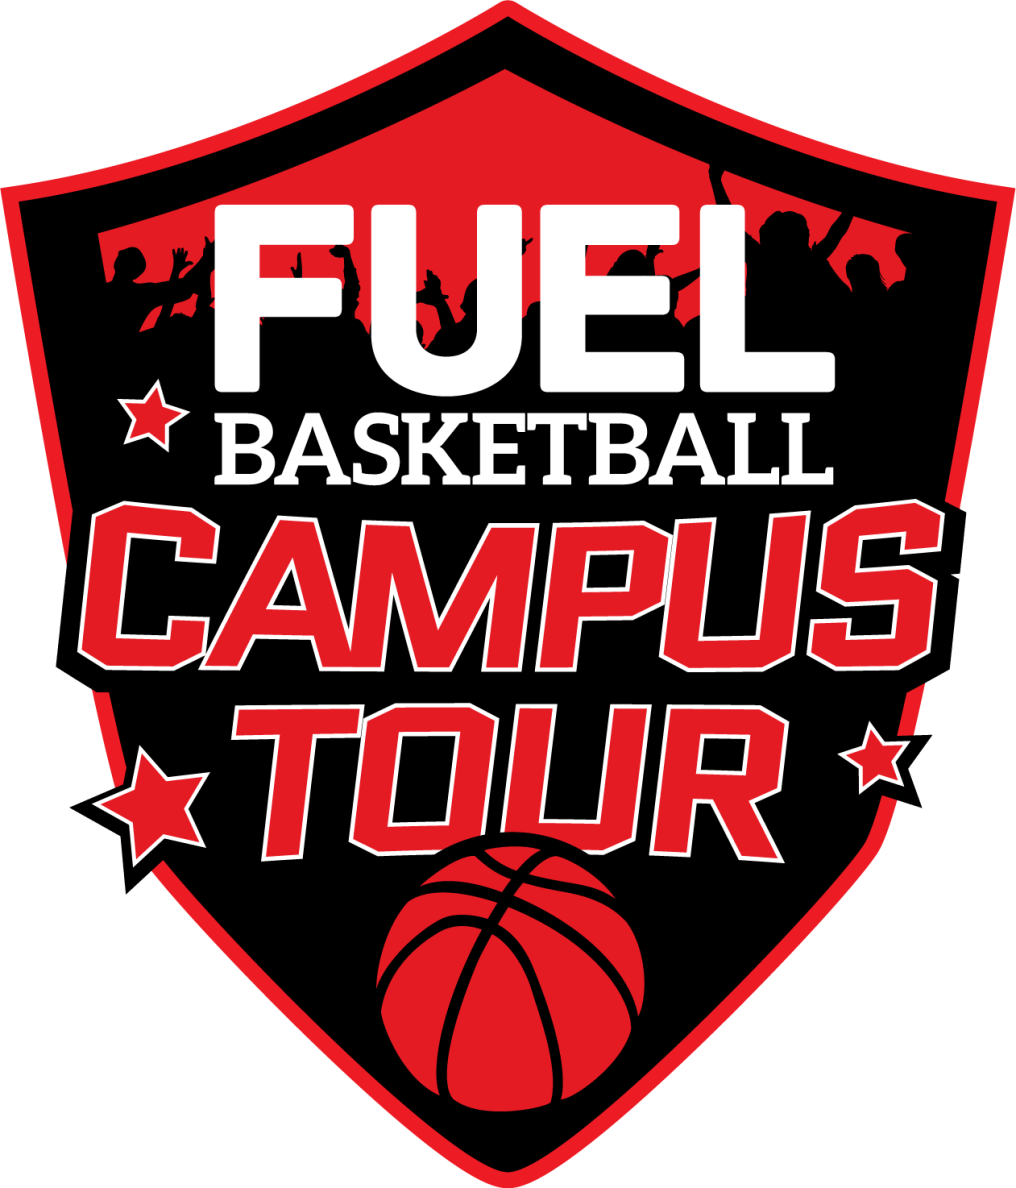 FUEL BK Campus Tour logo